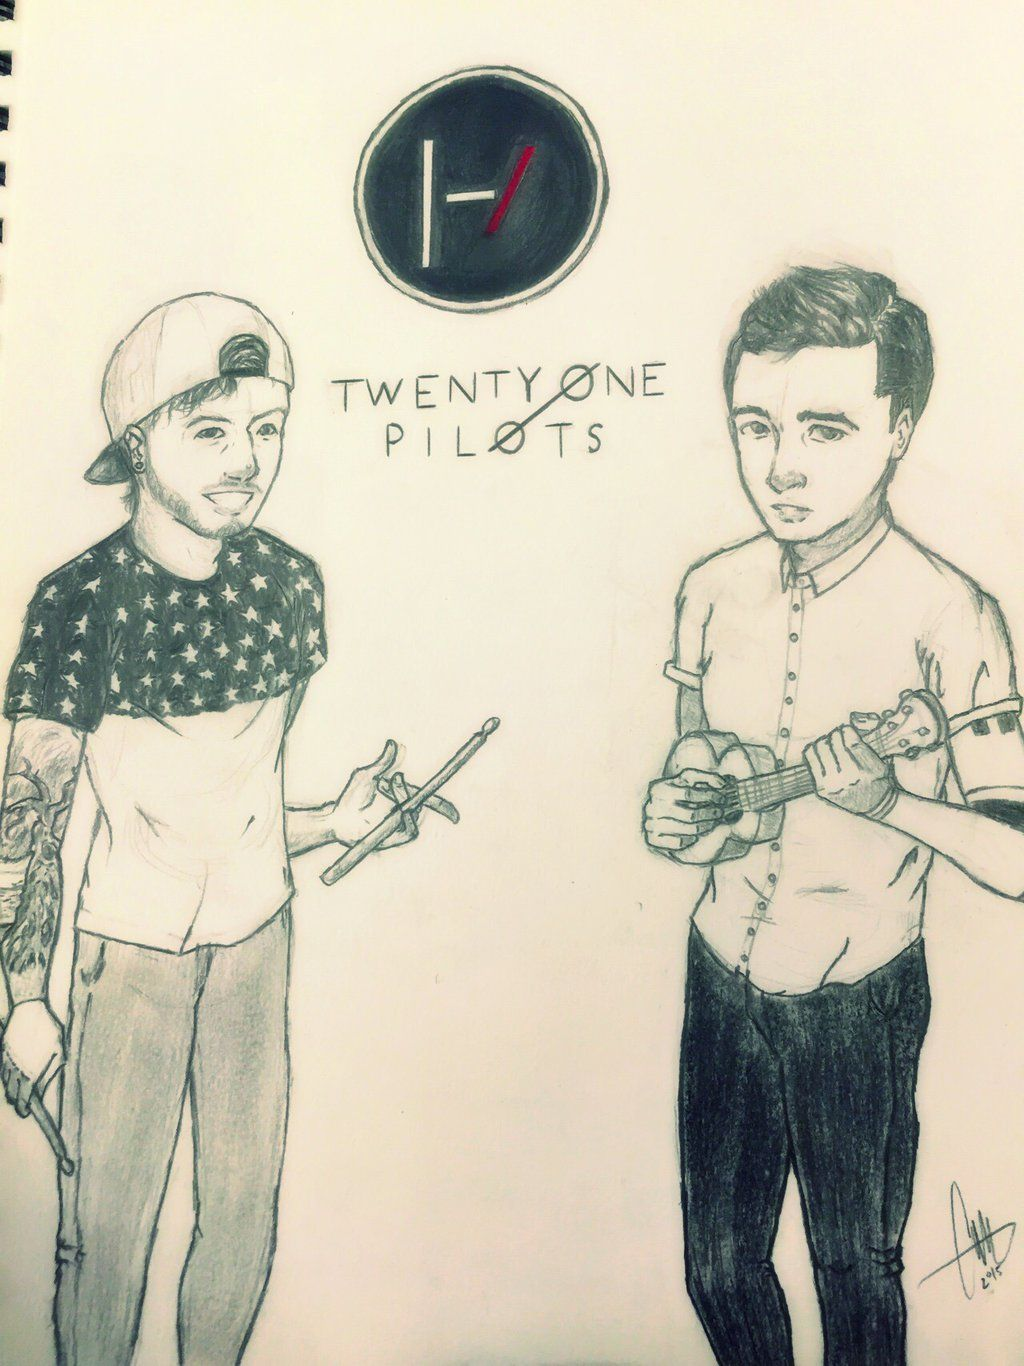 1024x1366 Twenty One Pilots Pilot